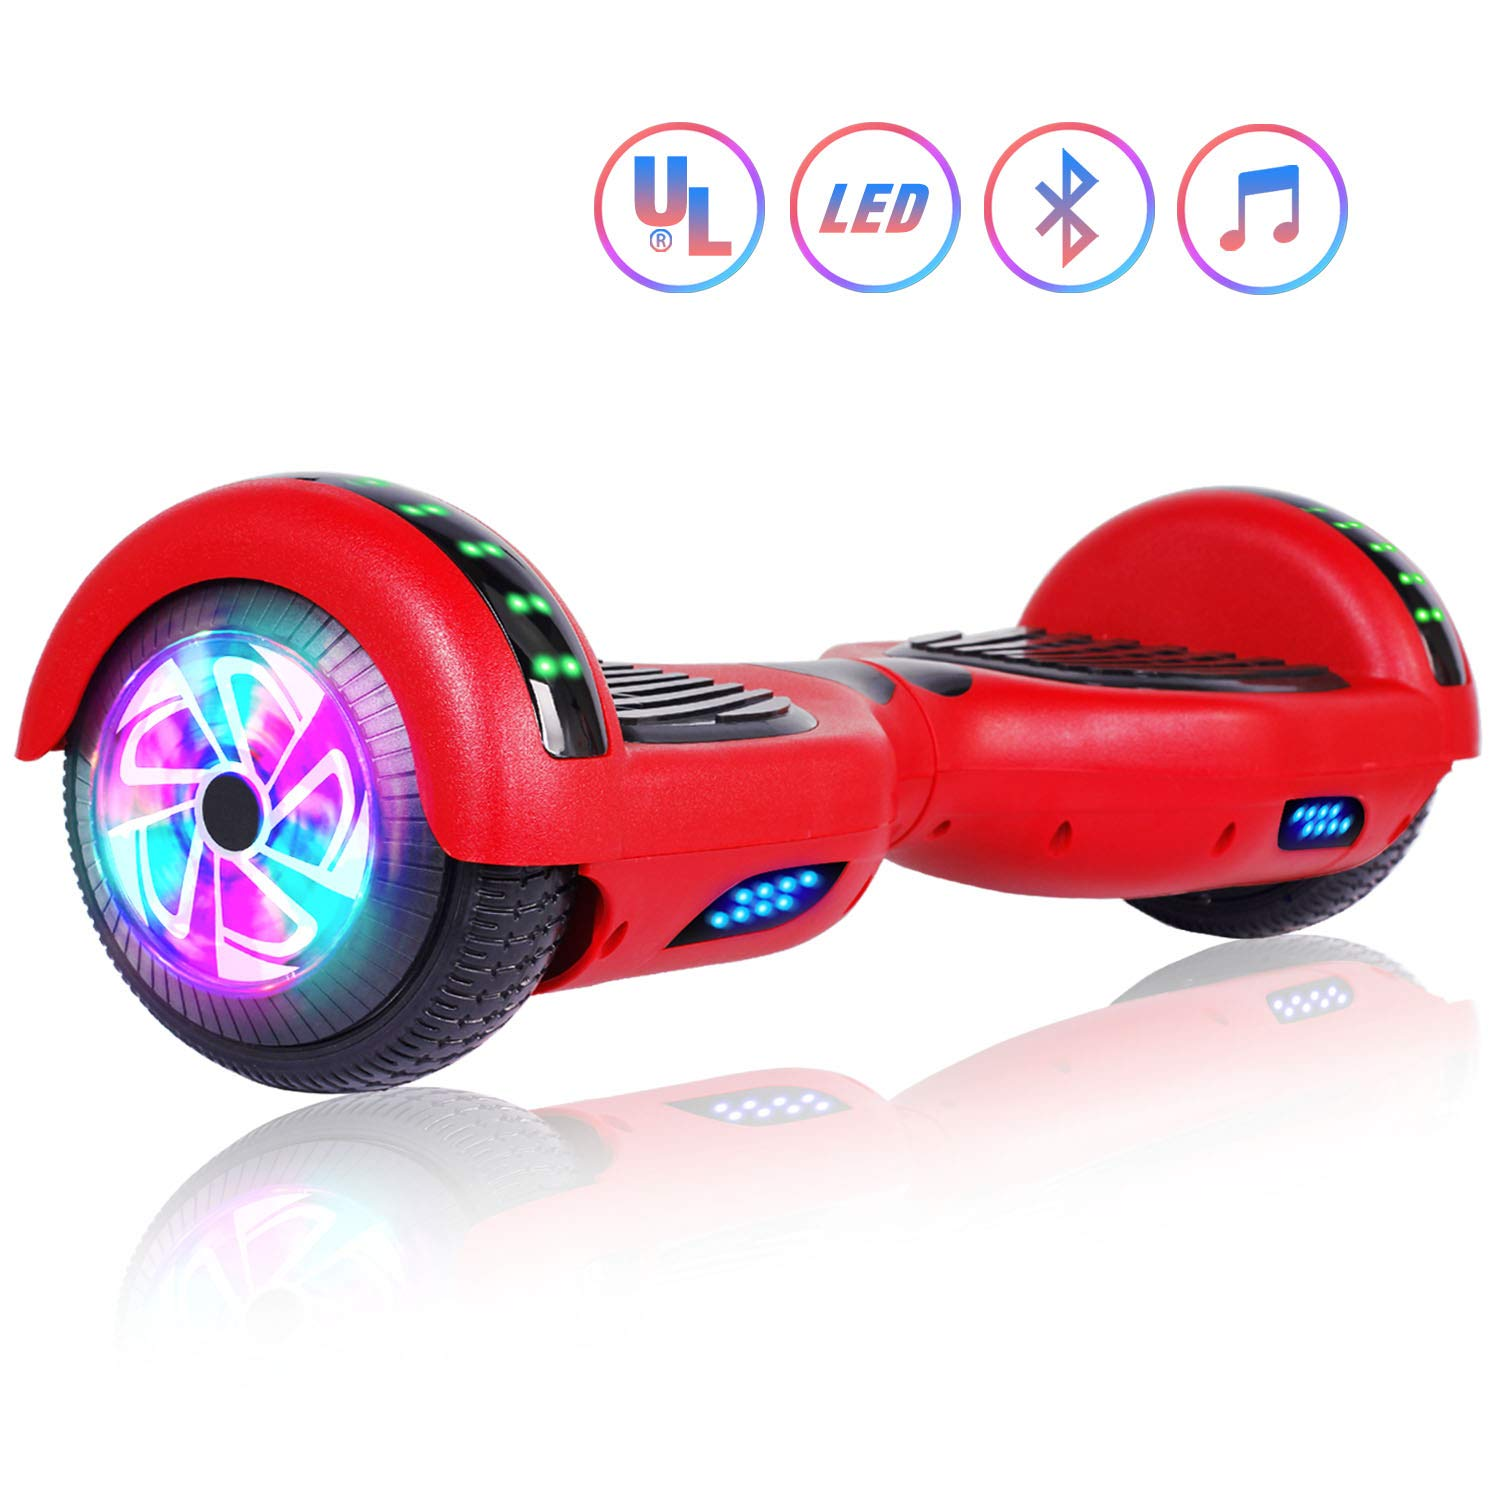 Felimoda 6.5'' inch Two Wheels Electric Smart Self Balancing Scooter Hoverboard with Wireless Speaker LED Light-UL 2272 Certified for Kids Gift and Adult,Red